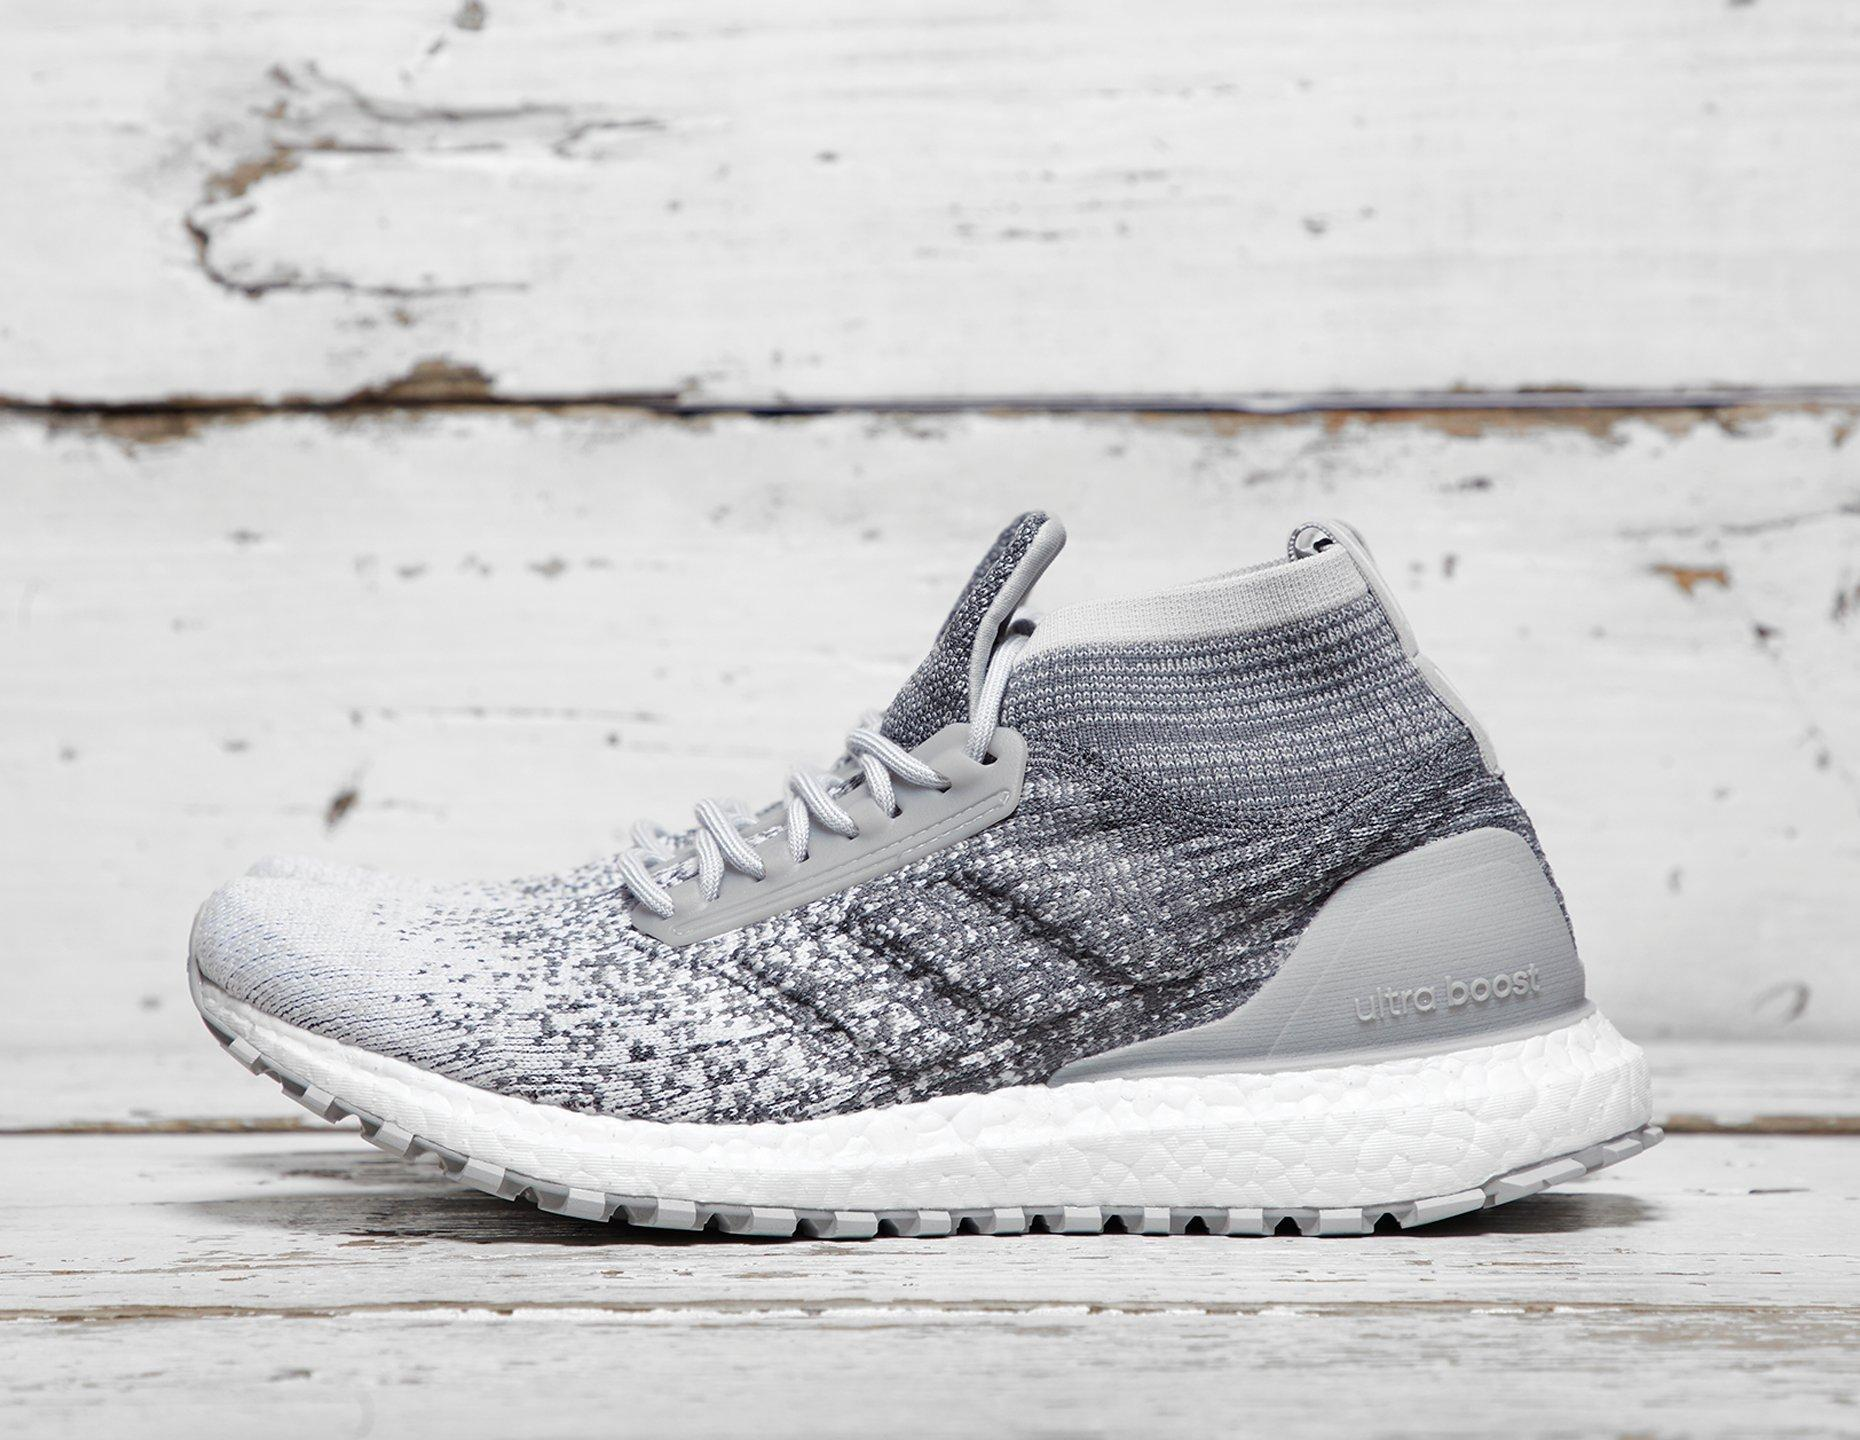 new arrival 4cfef 9674f Adidas Mens adidas x Reigning Champ Ultra Boost ATR - White/Grey,  White/Grey at Soleheaven Curated Collections